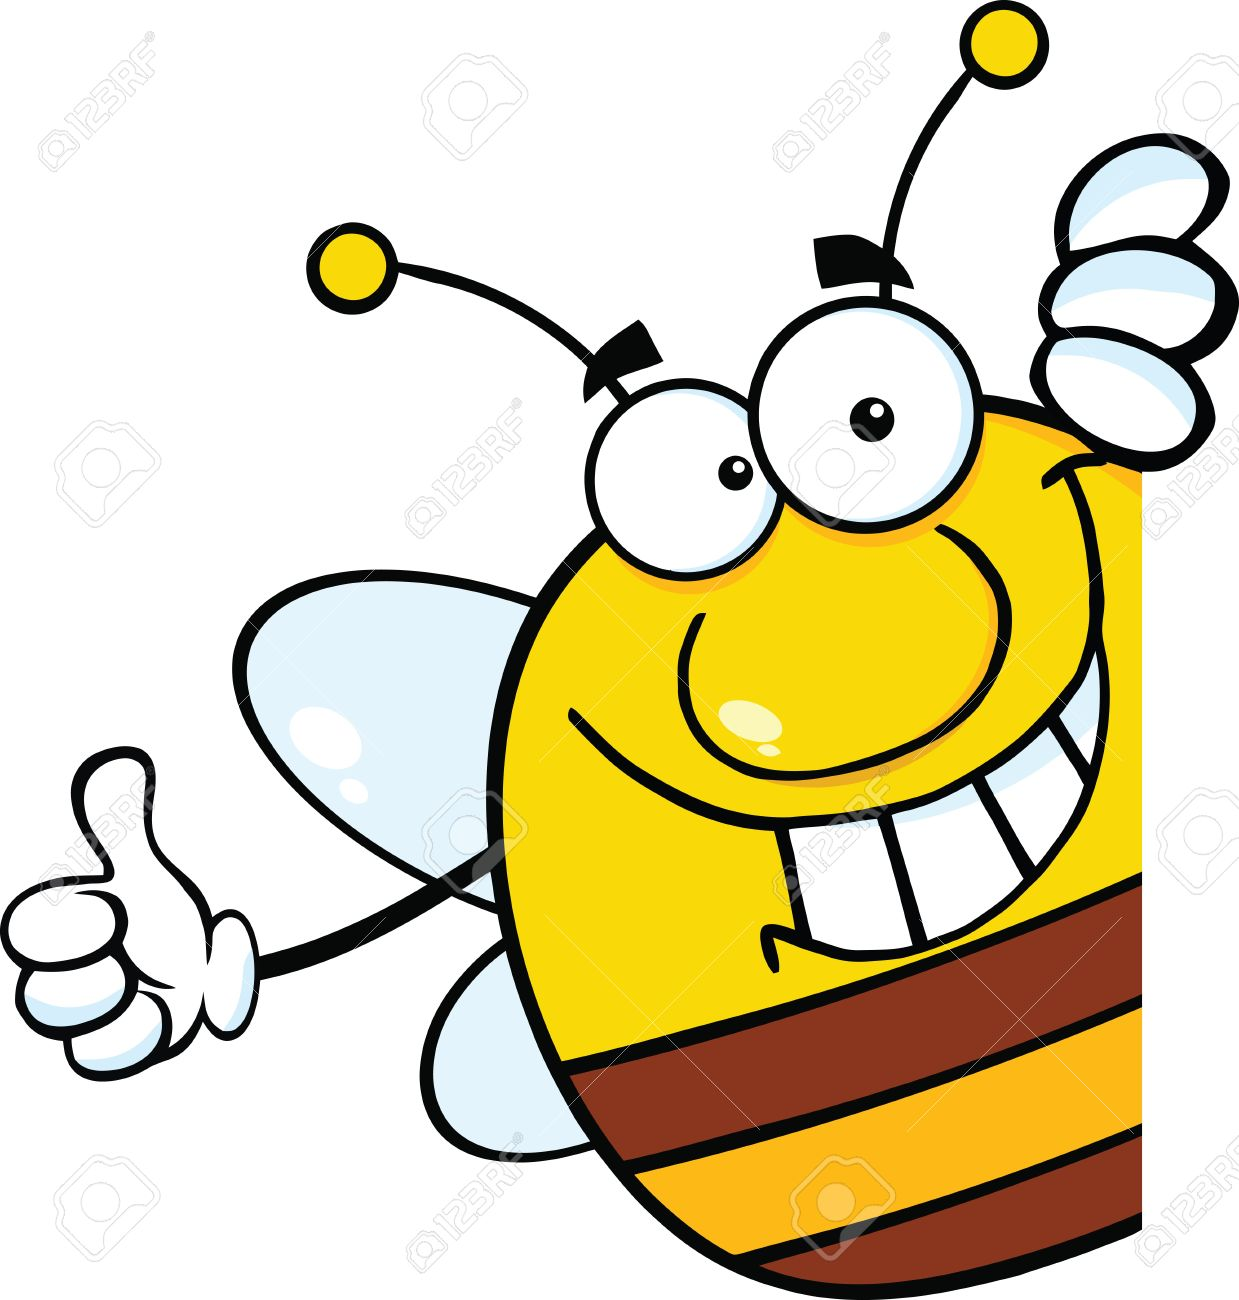 1239x1300 Bees Clipart Thumbs Up